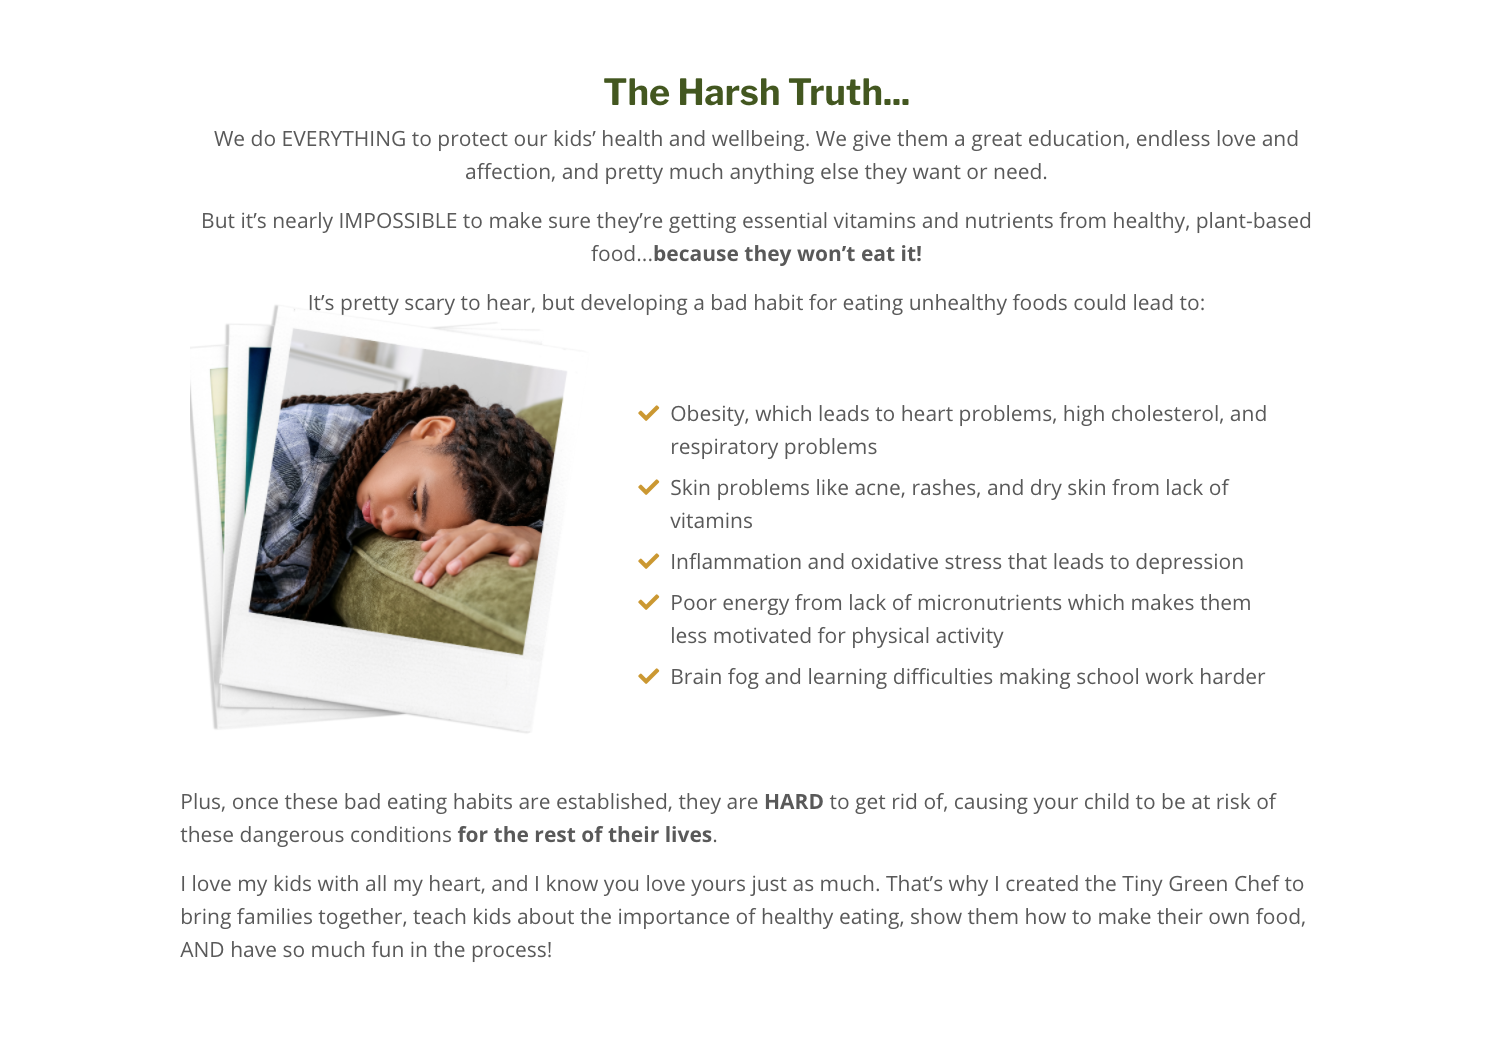 Screenshot of the Tiny Green Chef website discussing the pitfalls of unhealthy childhood eating